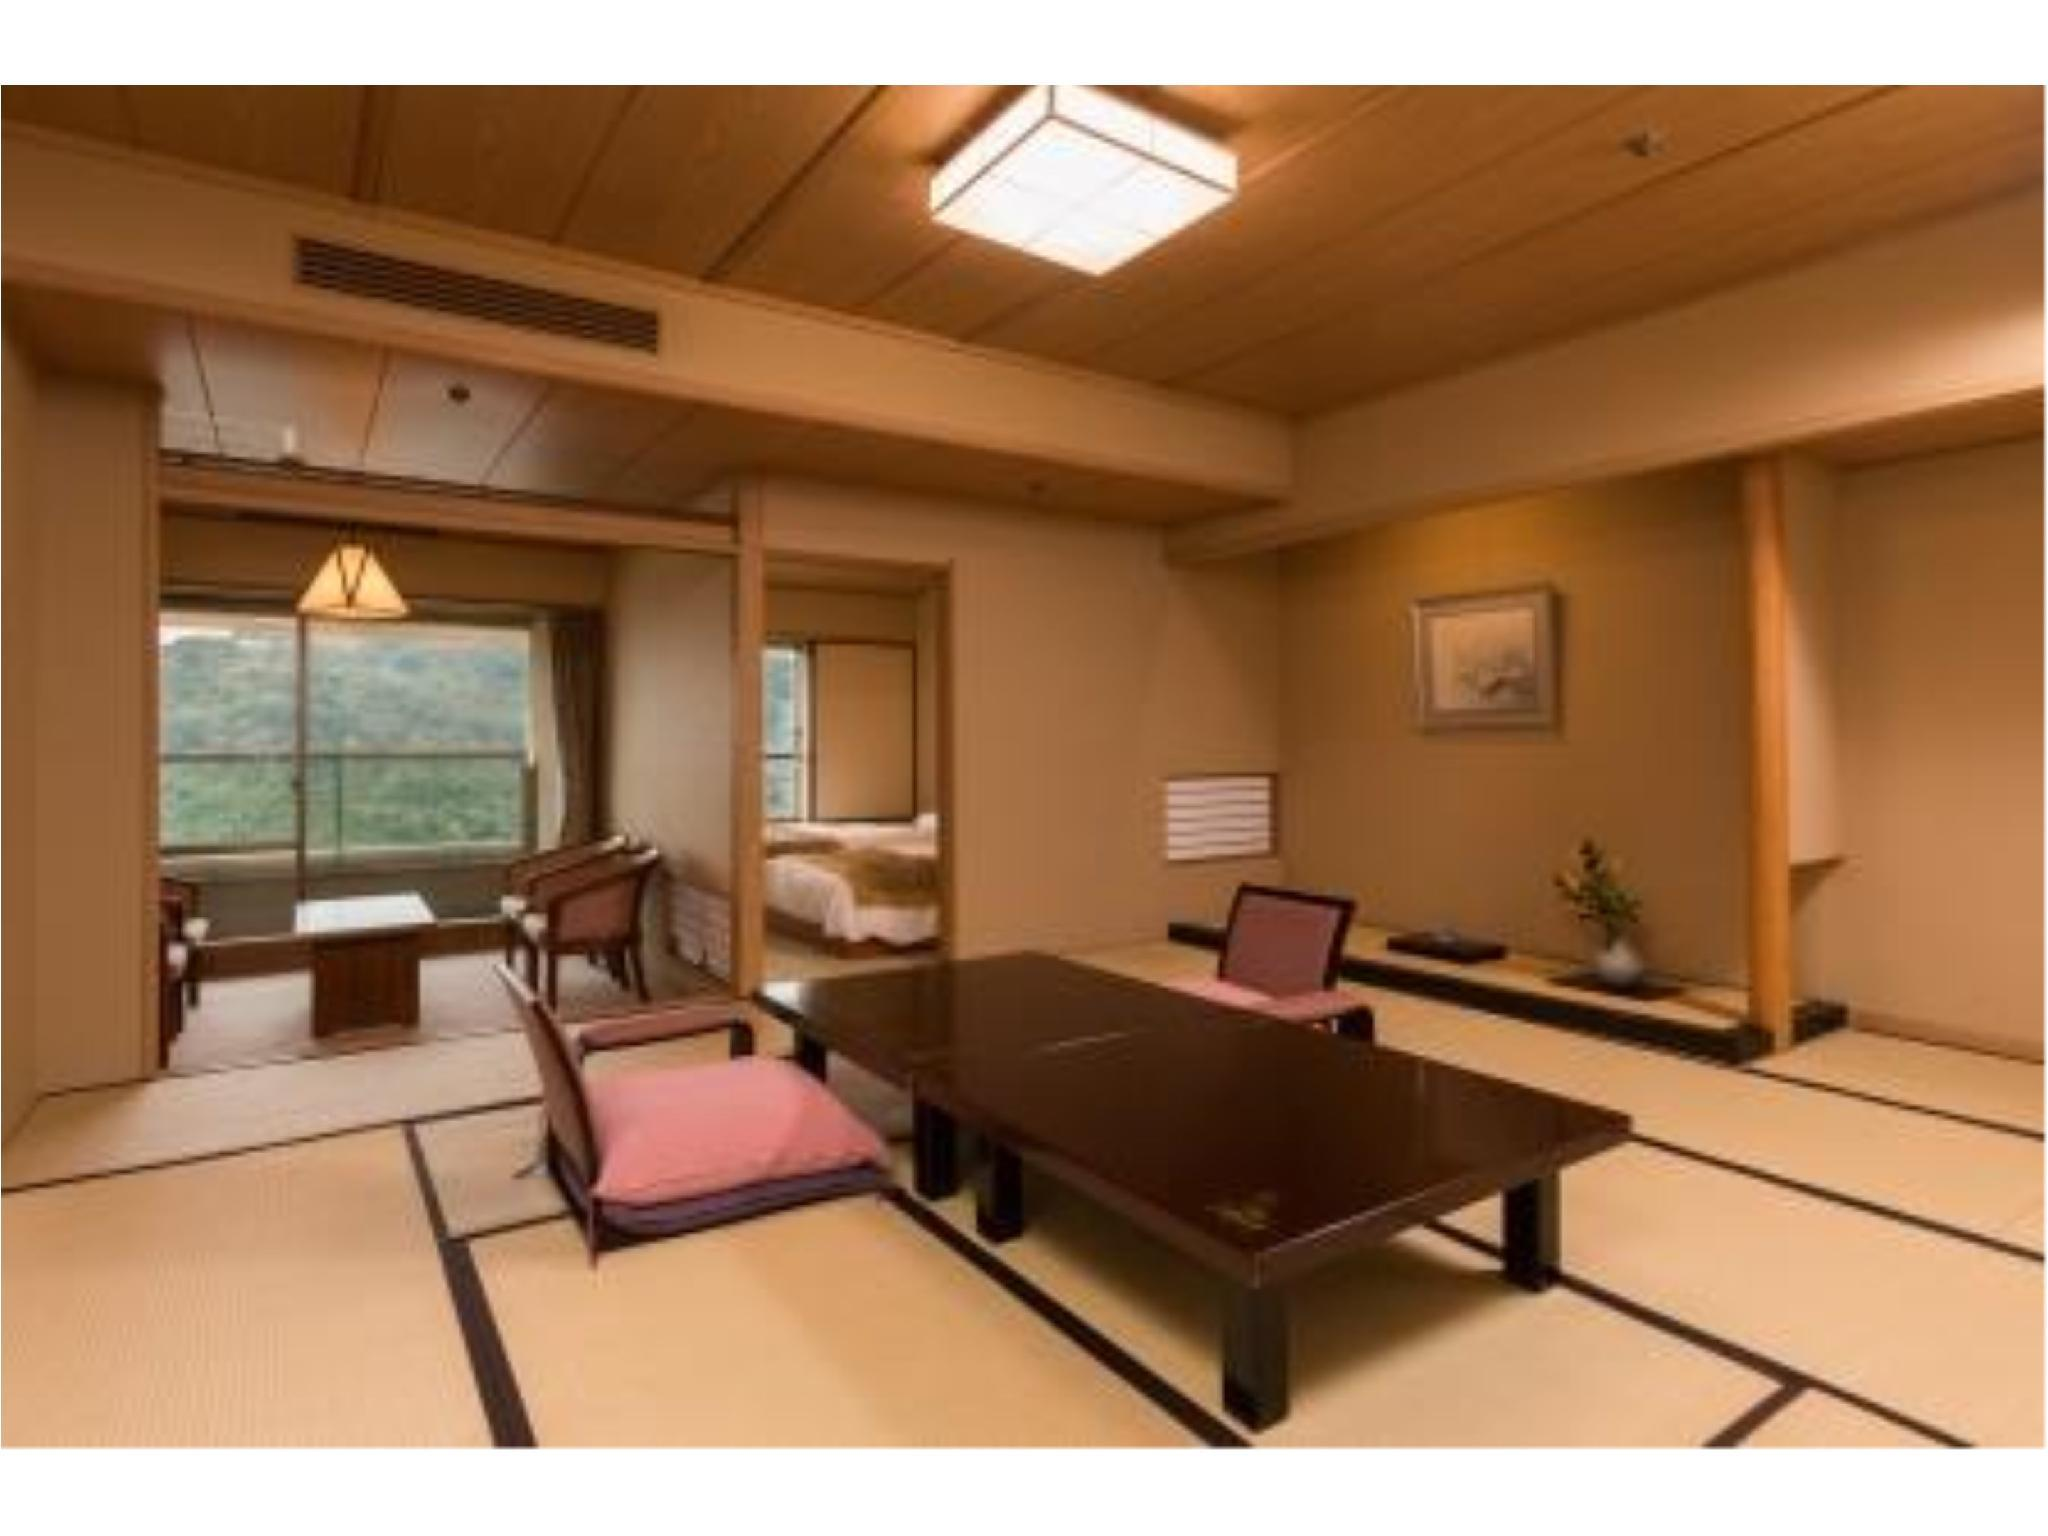 Japanese-style Room (2 Beds)